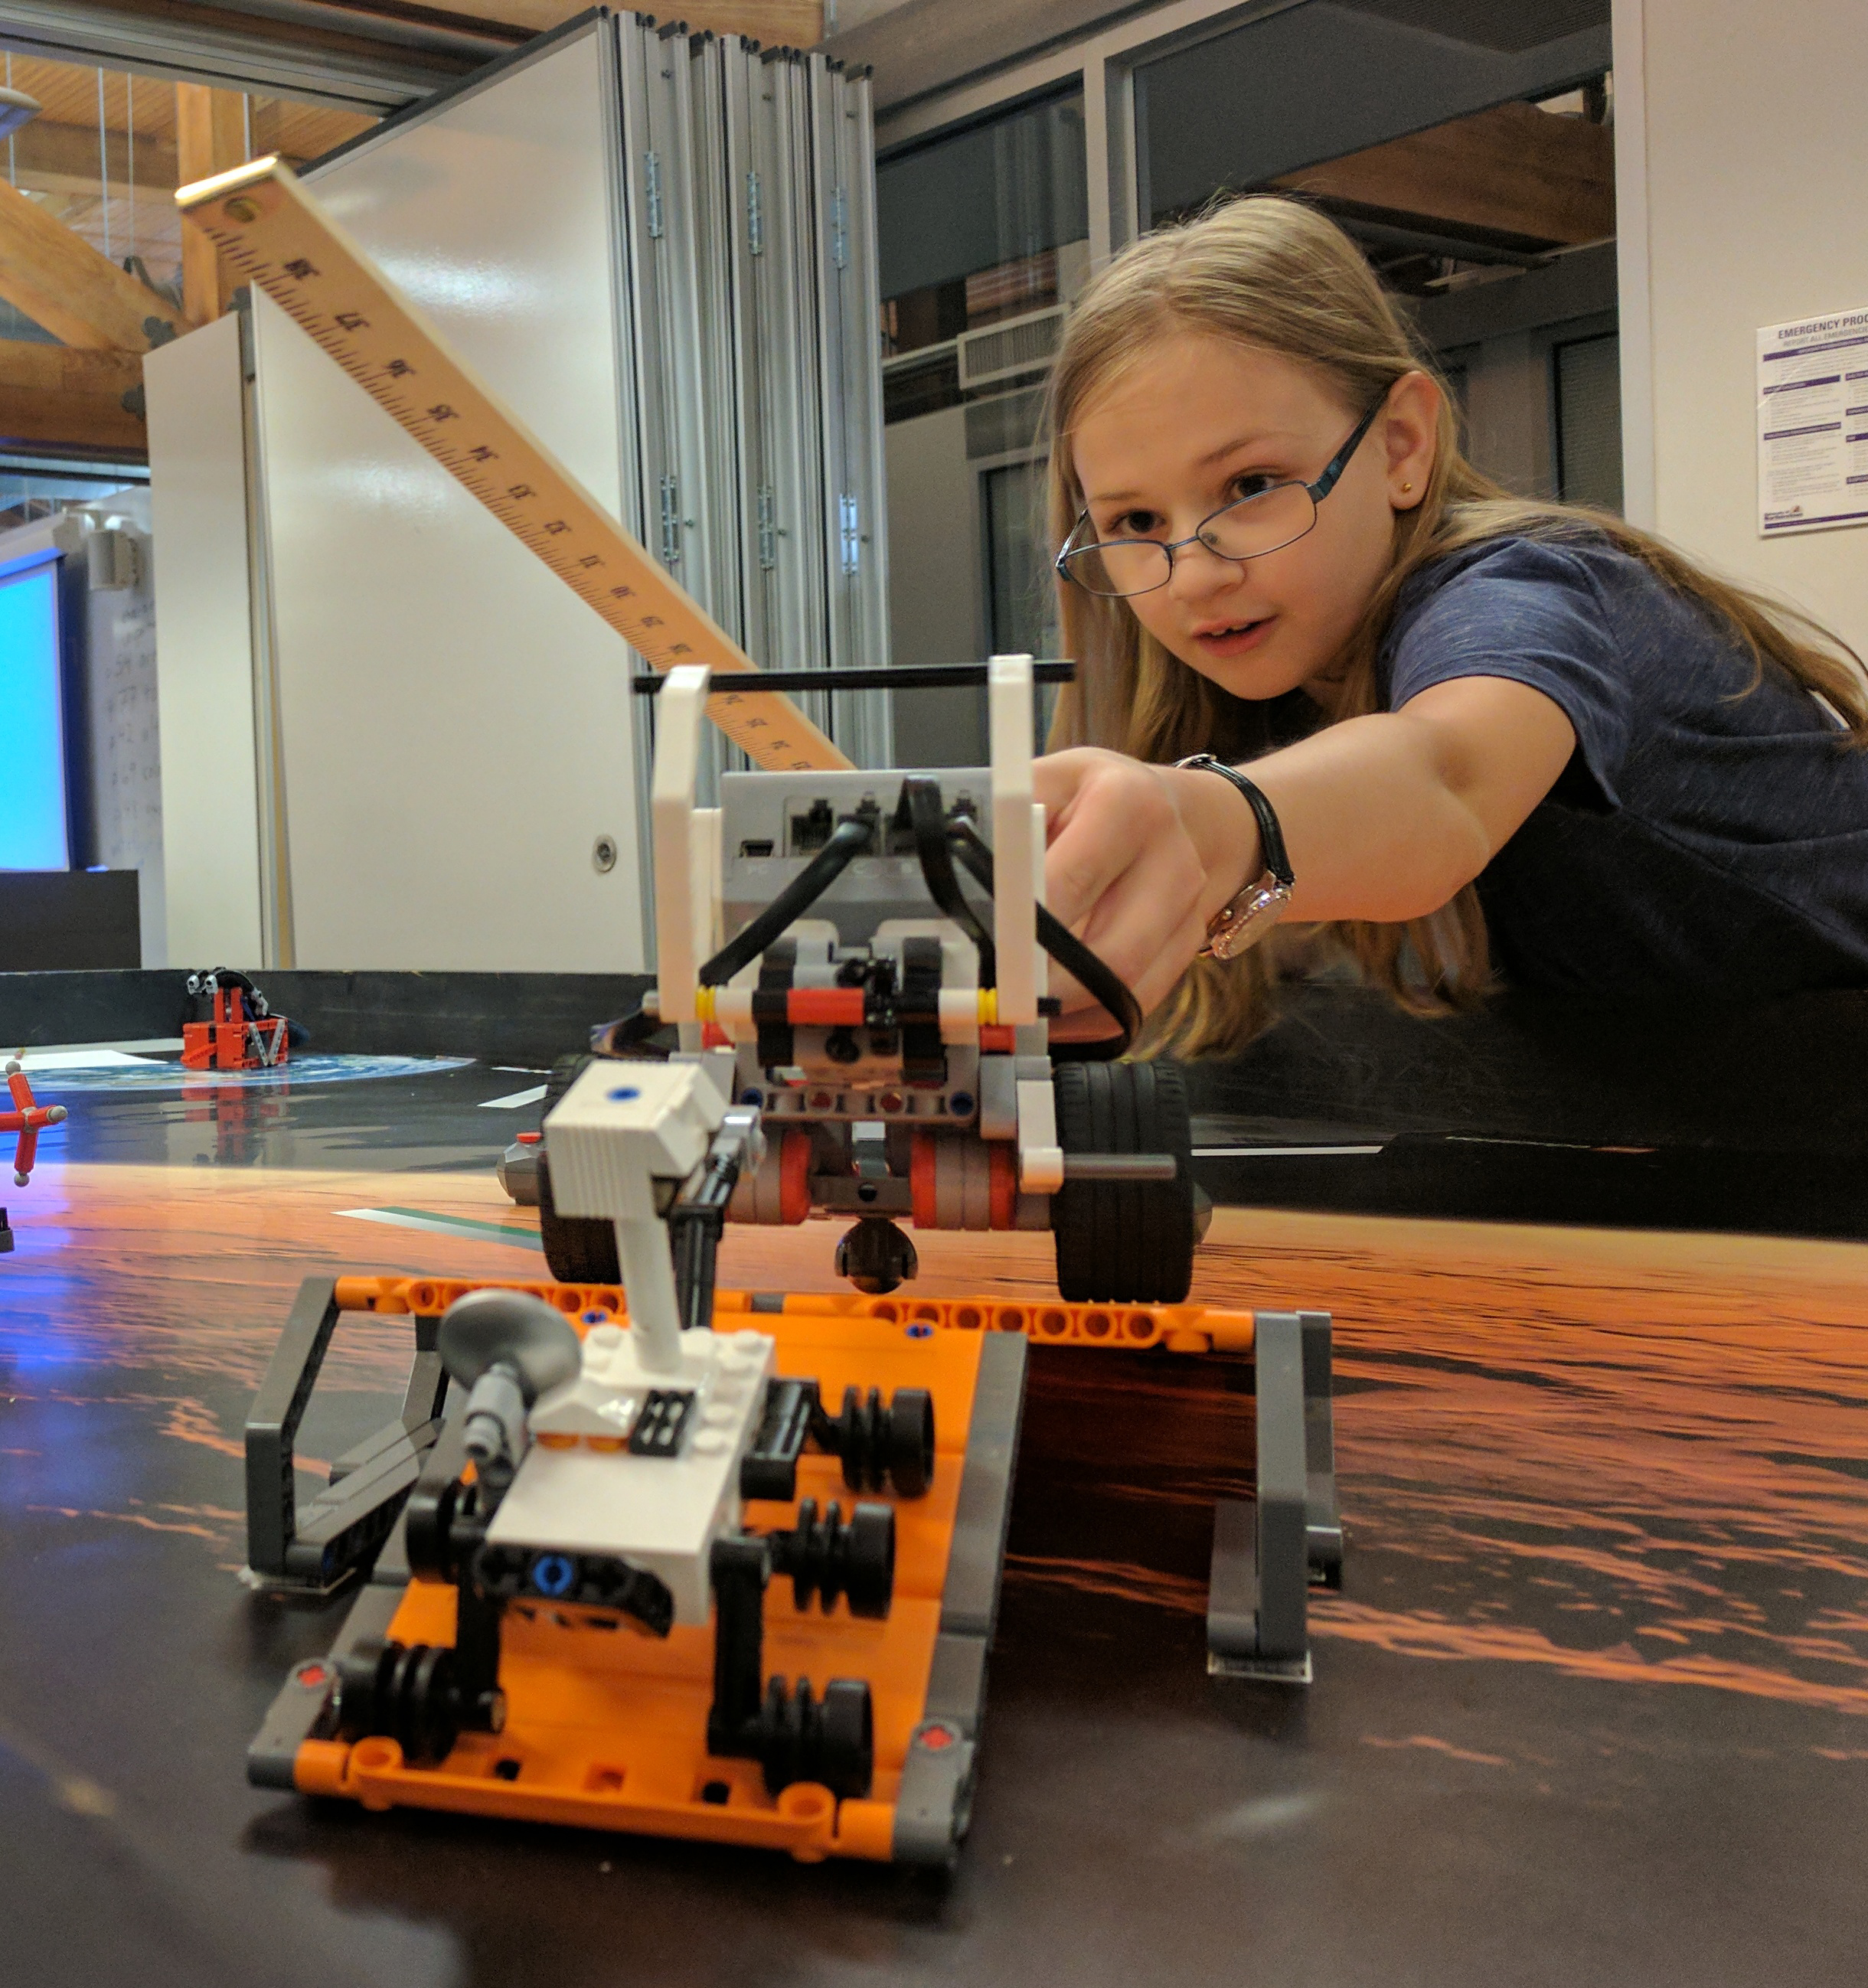 2017 Introduction to Robotics Camper measuring the field so that she can improve her program and the accuracy of her robot.